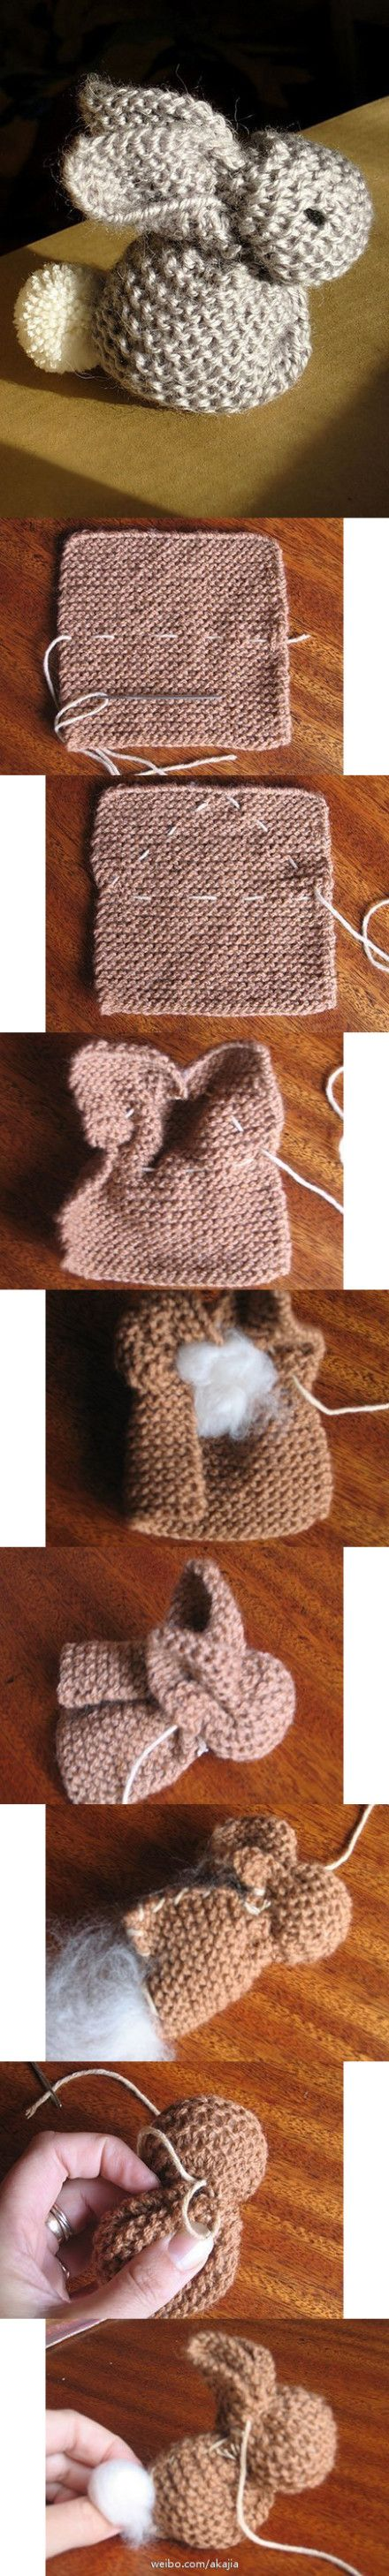 interesting idea - this post creates a bunny from a square piece of knitting -- seems like it ought to work with a square made pf single crochet too